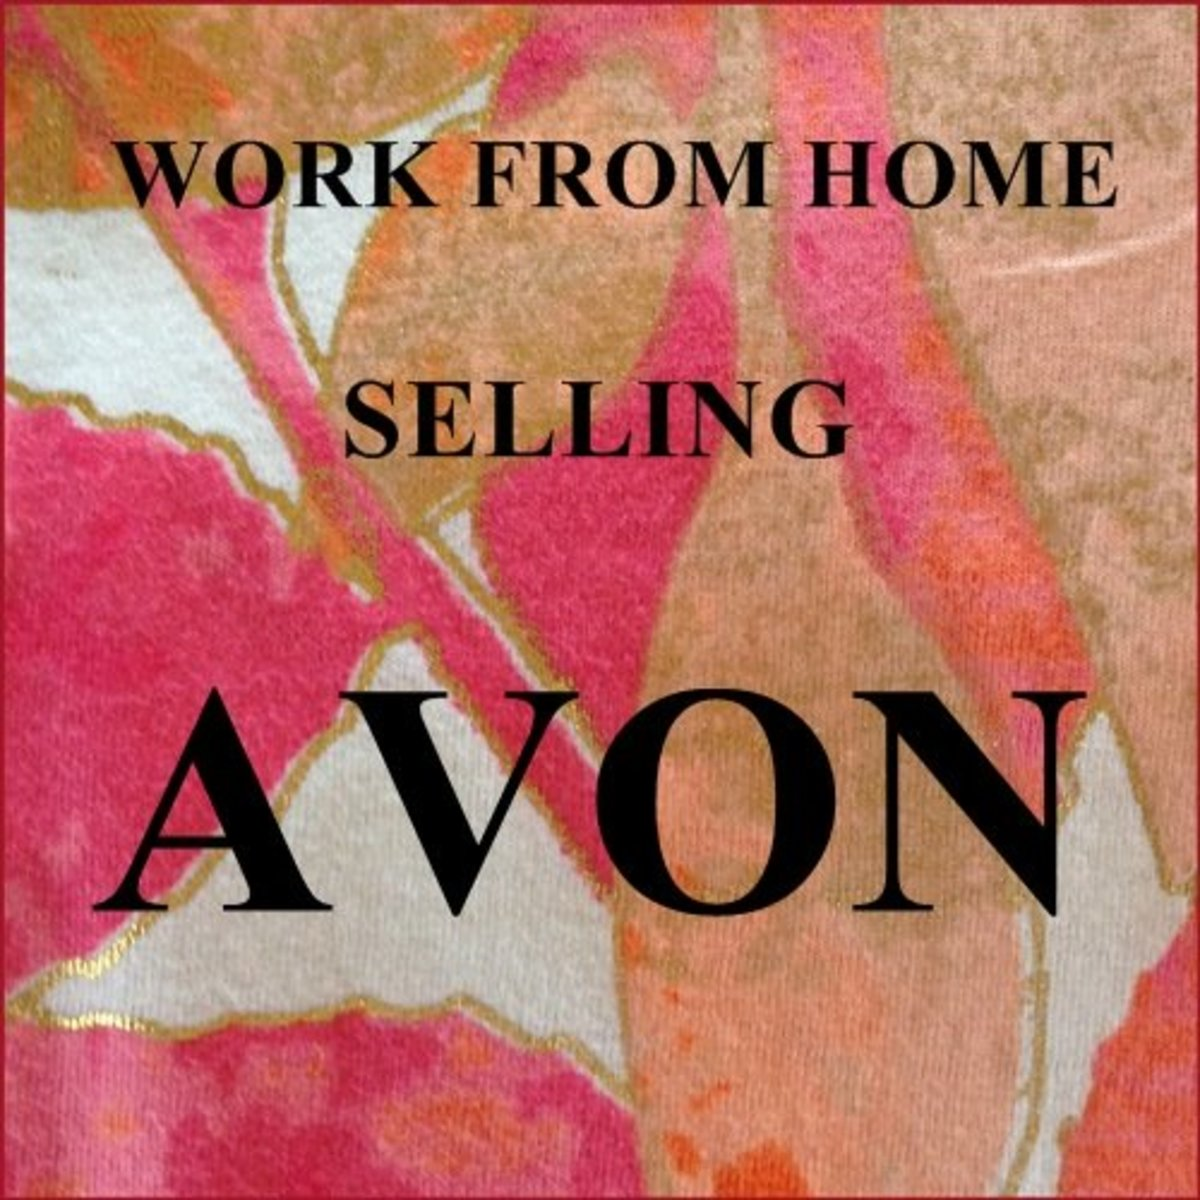 Can You Make Money Selling Avon?